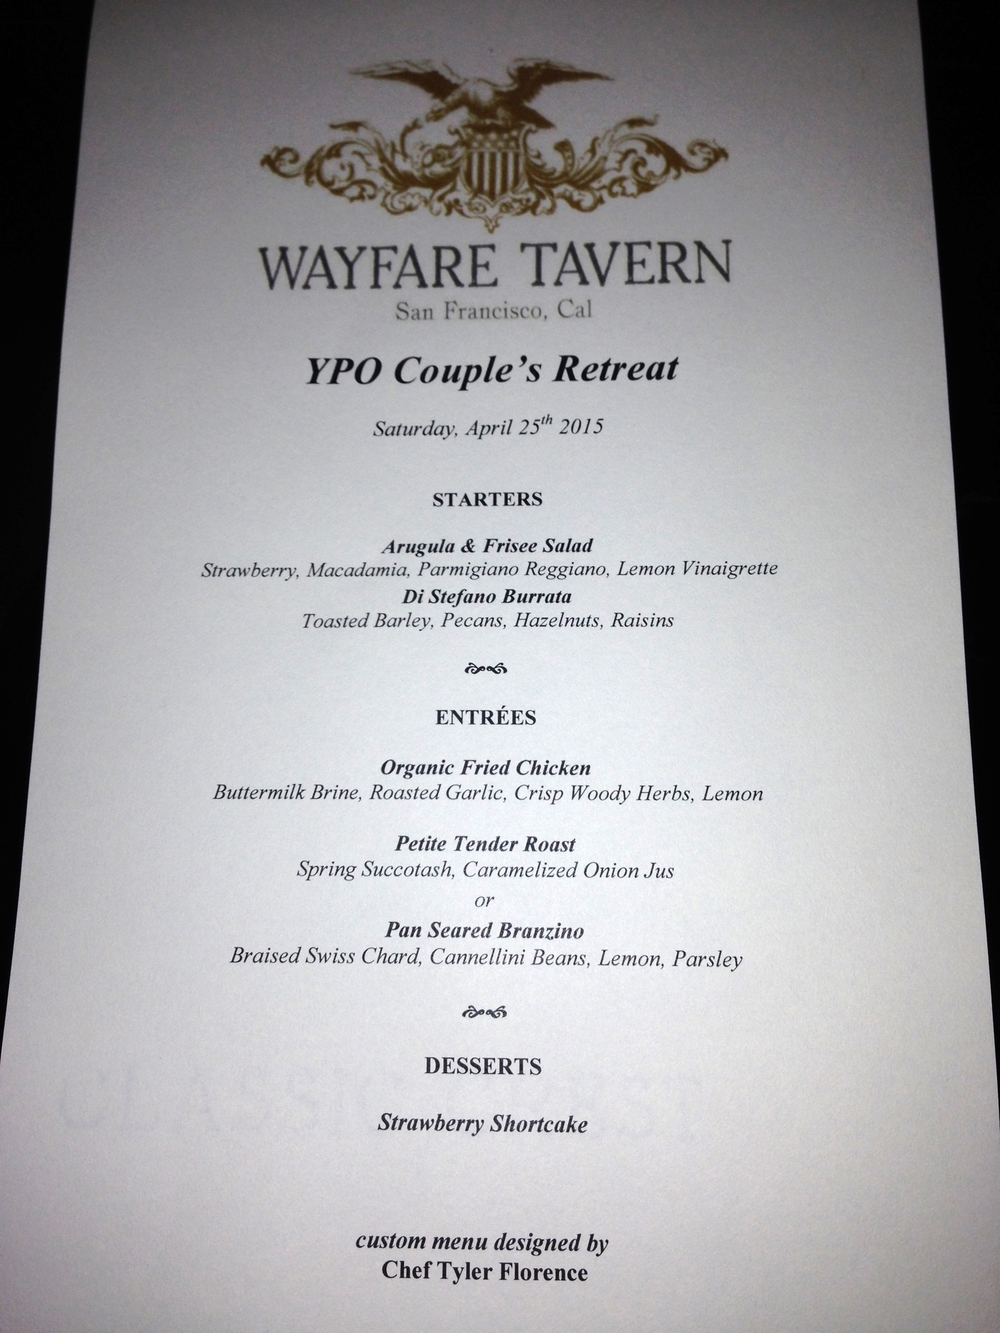 Customized menu for the group designed by Chef Tyler Florence